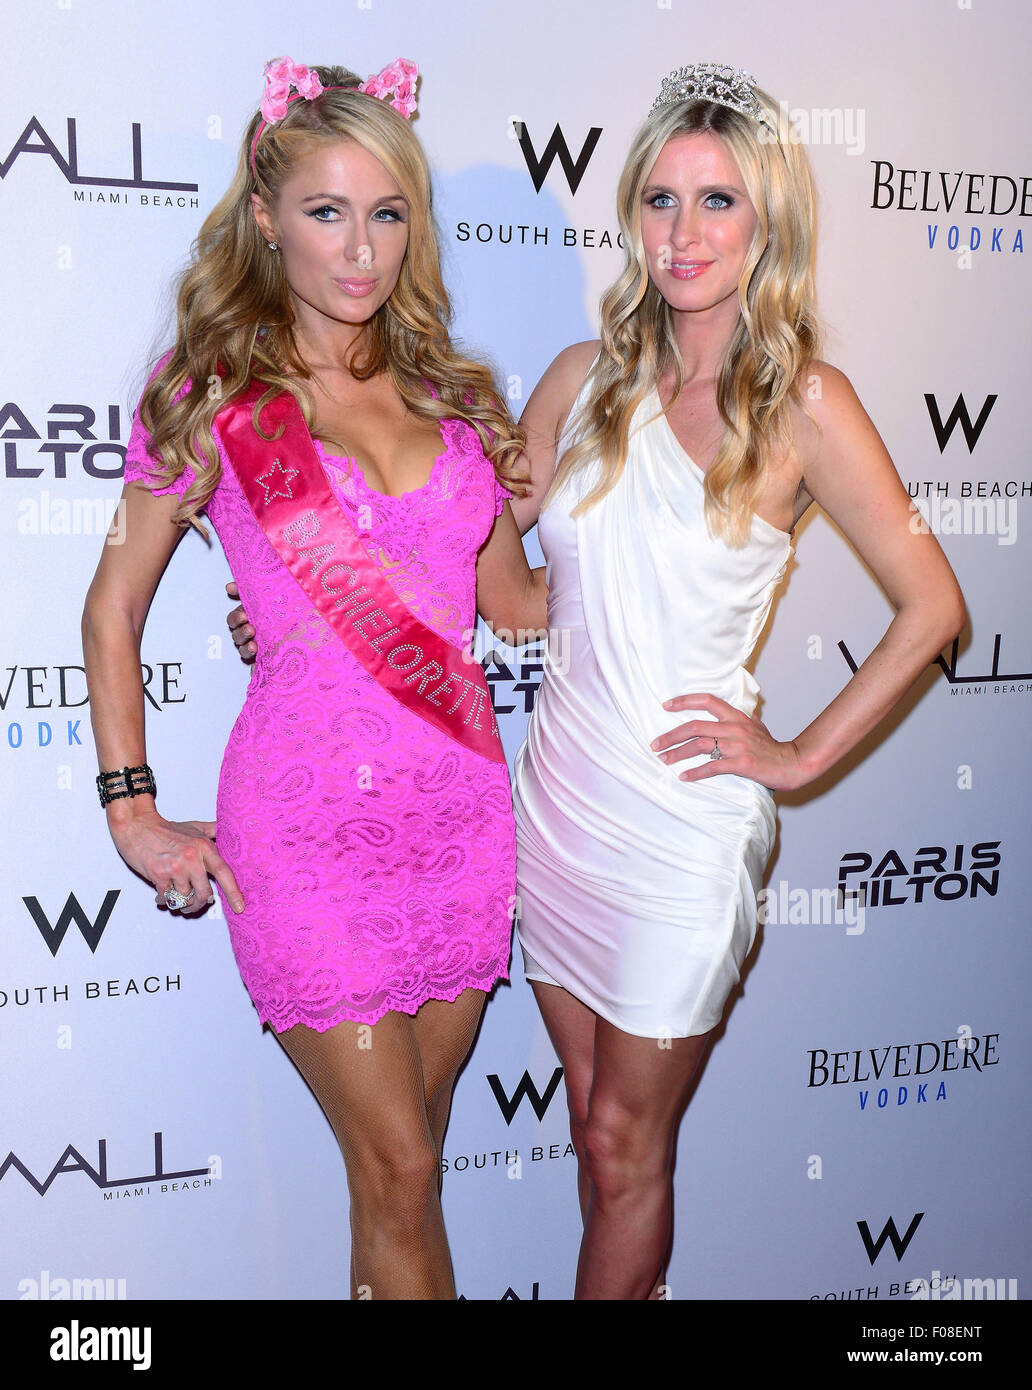 paris hilton debuts new single and nicky hiltons ultimate bachelorette party at wall at w hotel featuring paris hilton nicky hilton where miami beach - Single Wall Hotel 2015